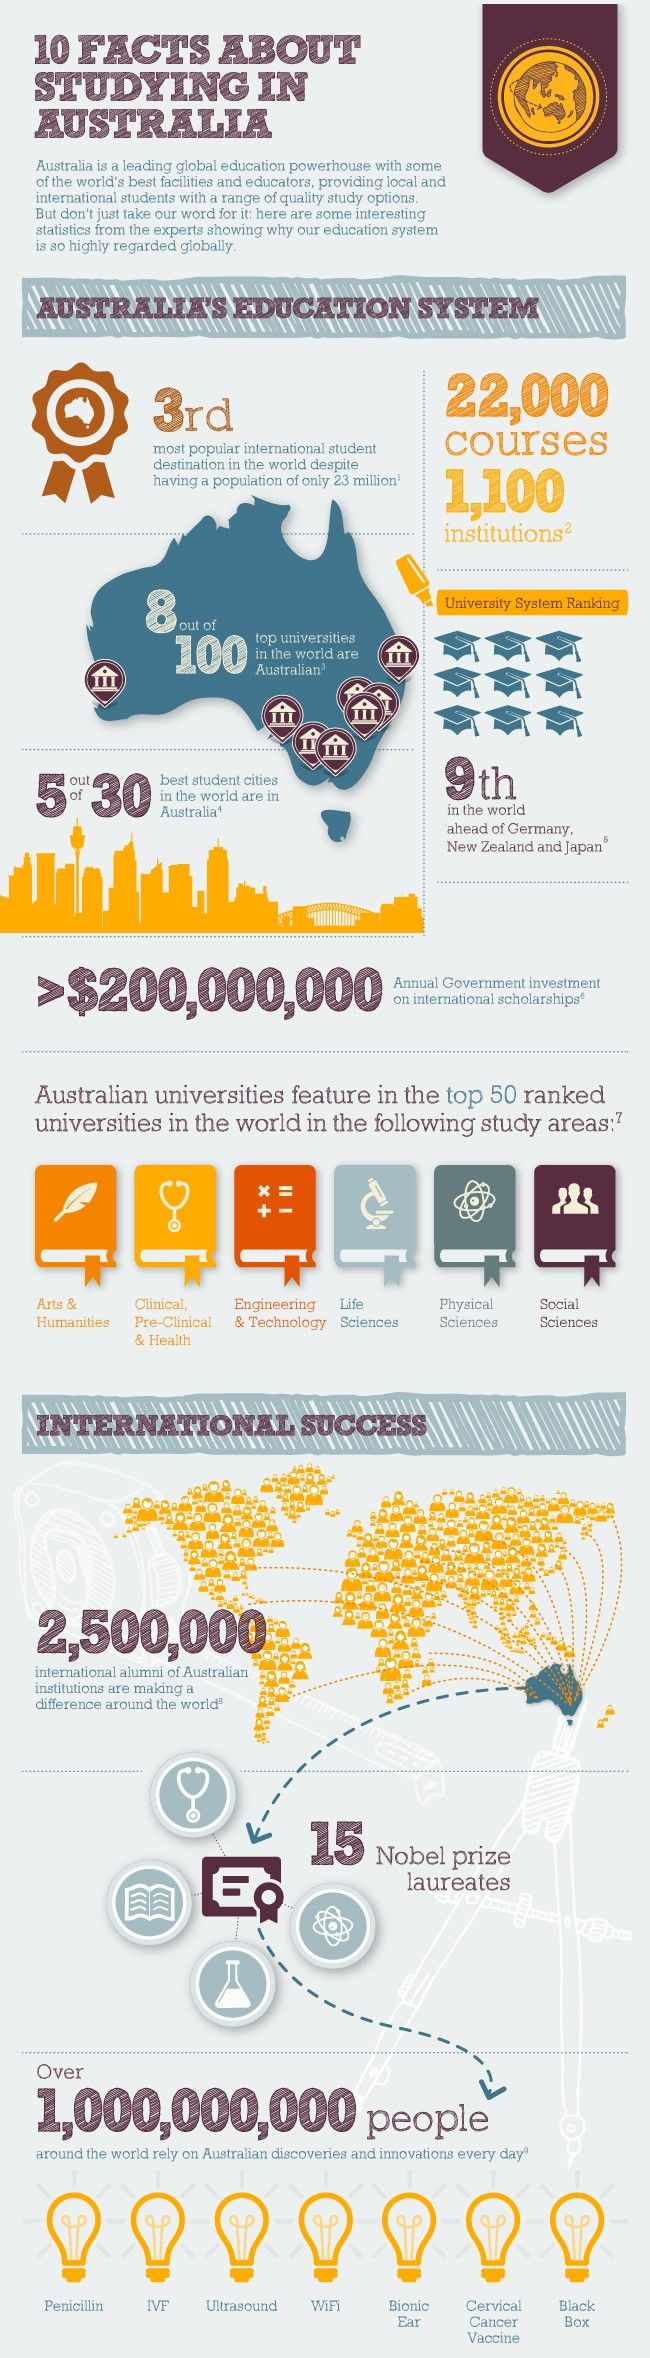 Moving across the world to study is a big decision – how do you choose where to go? Here are few reasons why studying in #Australia is a prime choice for many international students.   #StudyAbroad